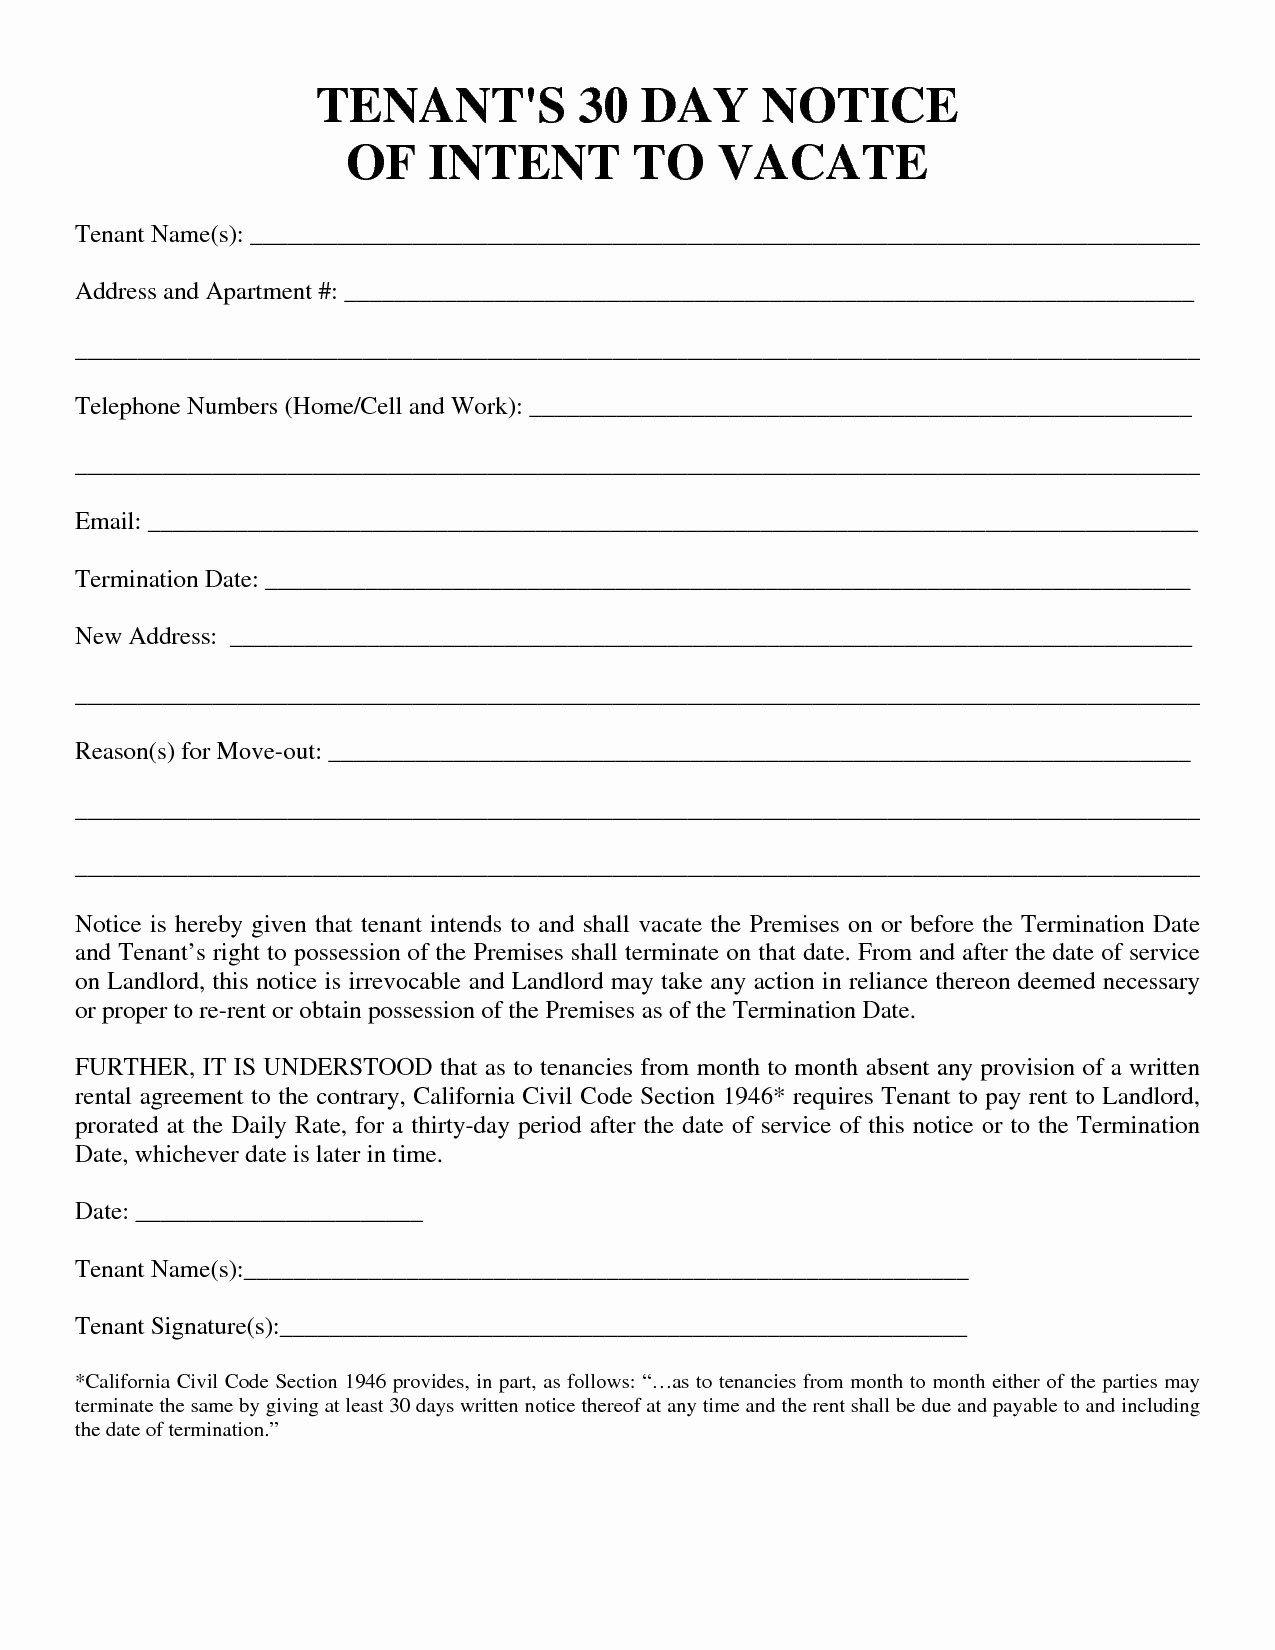 Landlord Notice to Vacate Lovely 30 Day Notice to Vacate Template